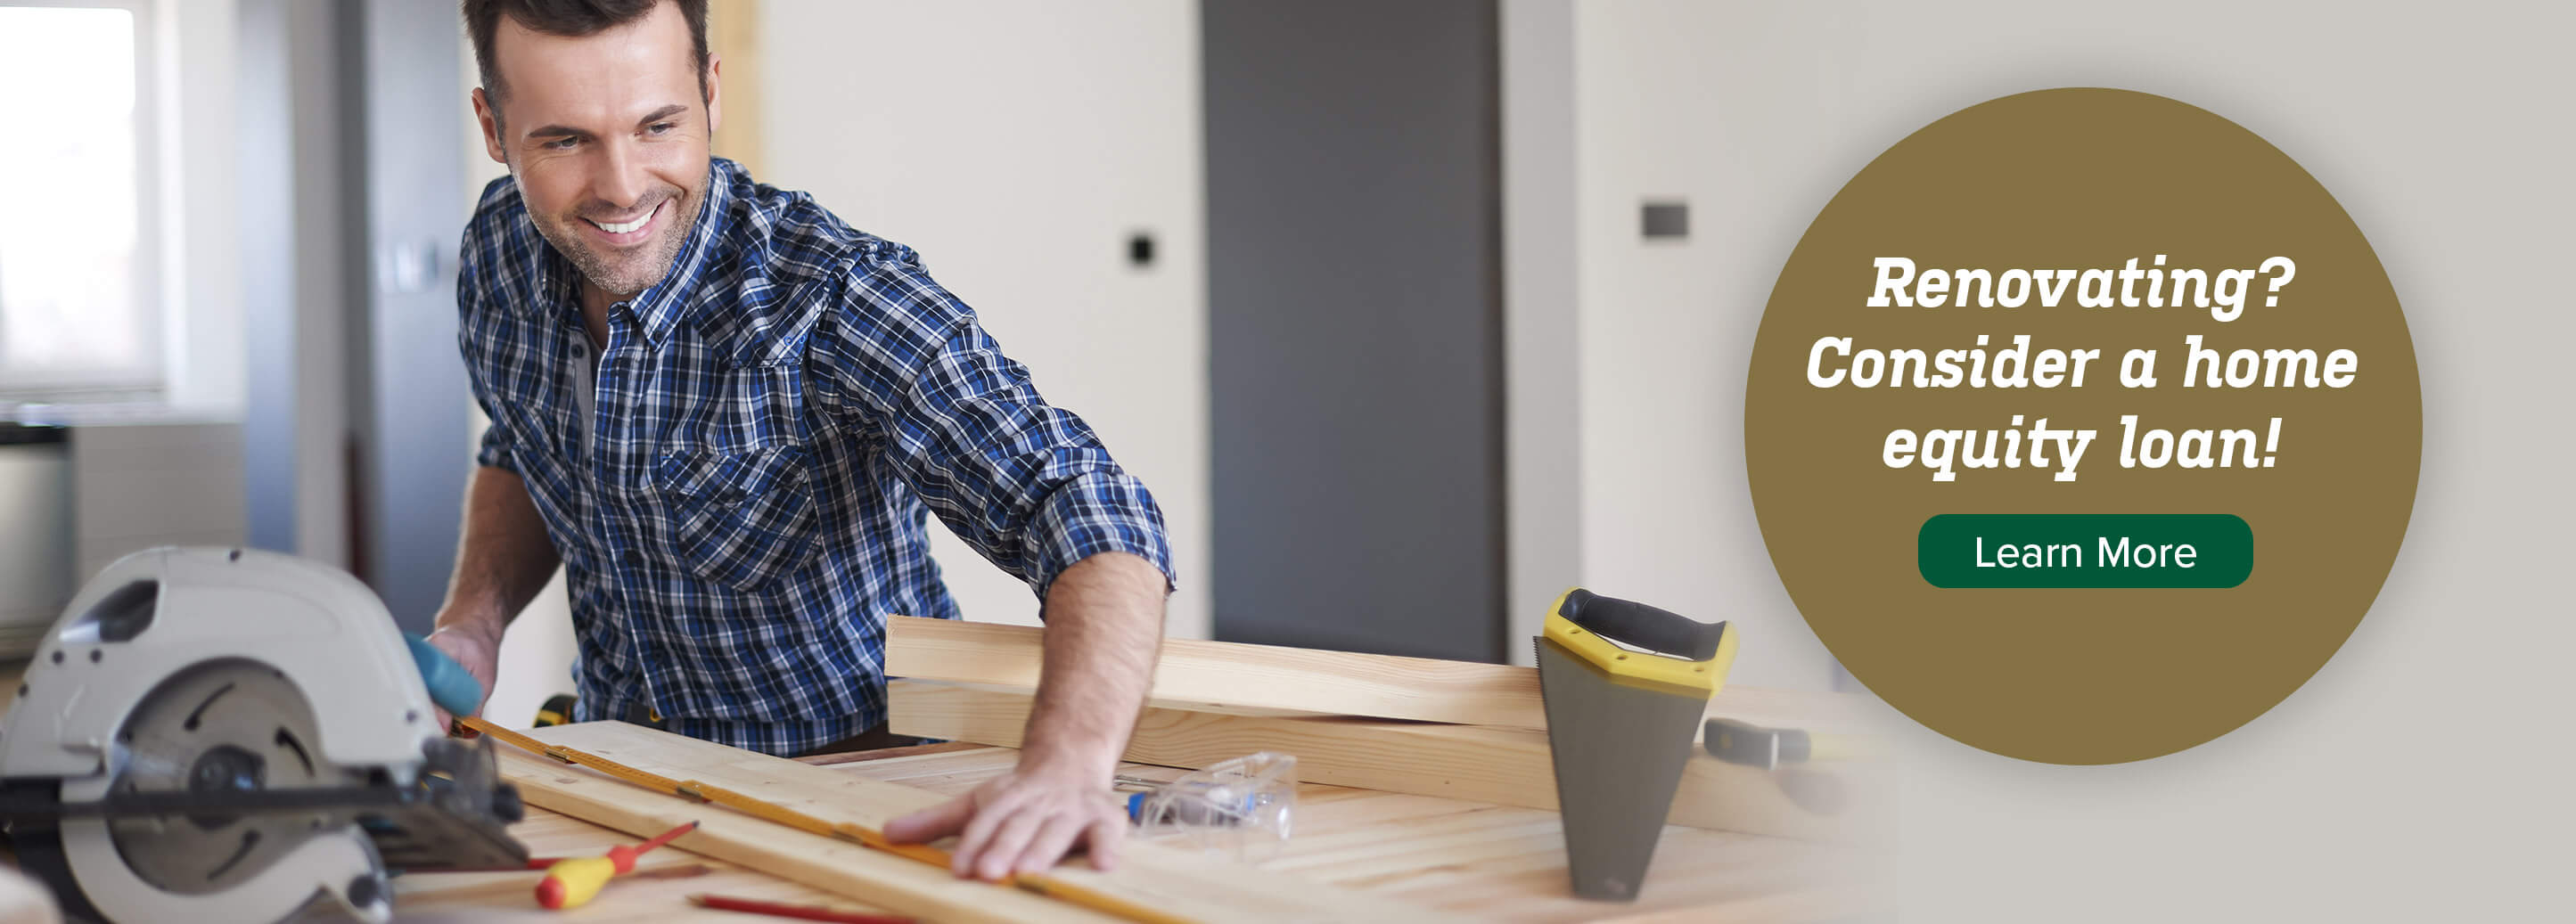 Renovating? Consider a home equity loan! Learn More.